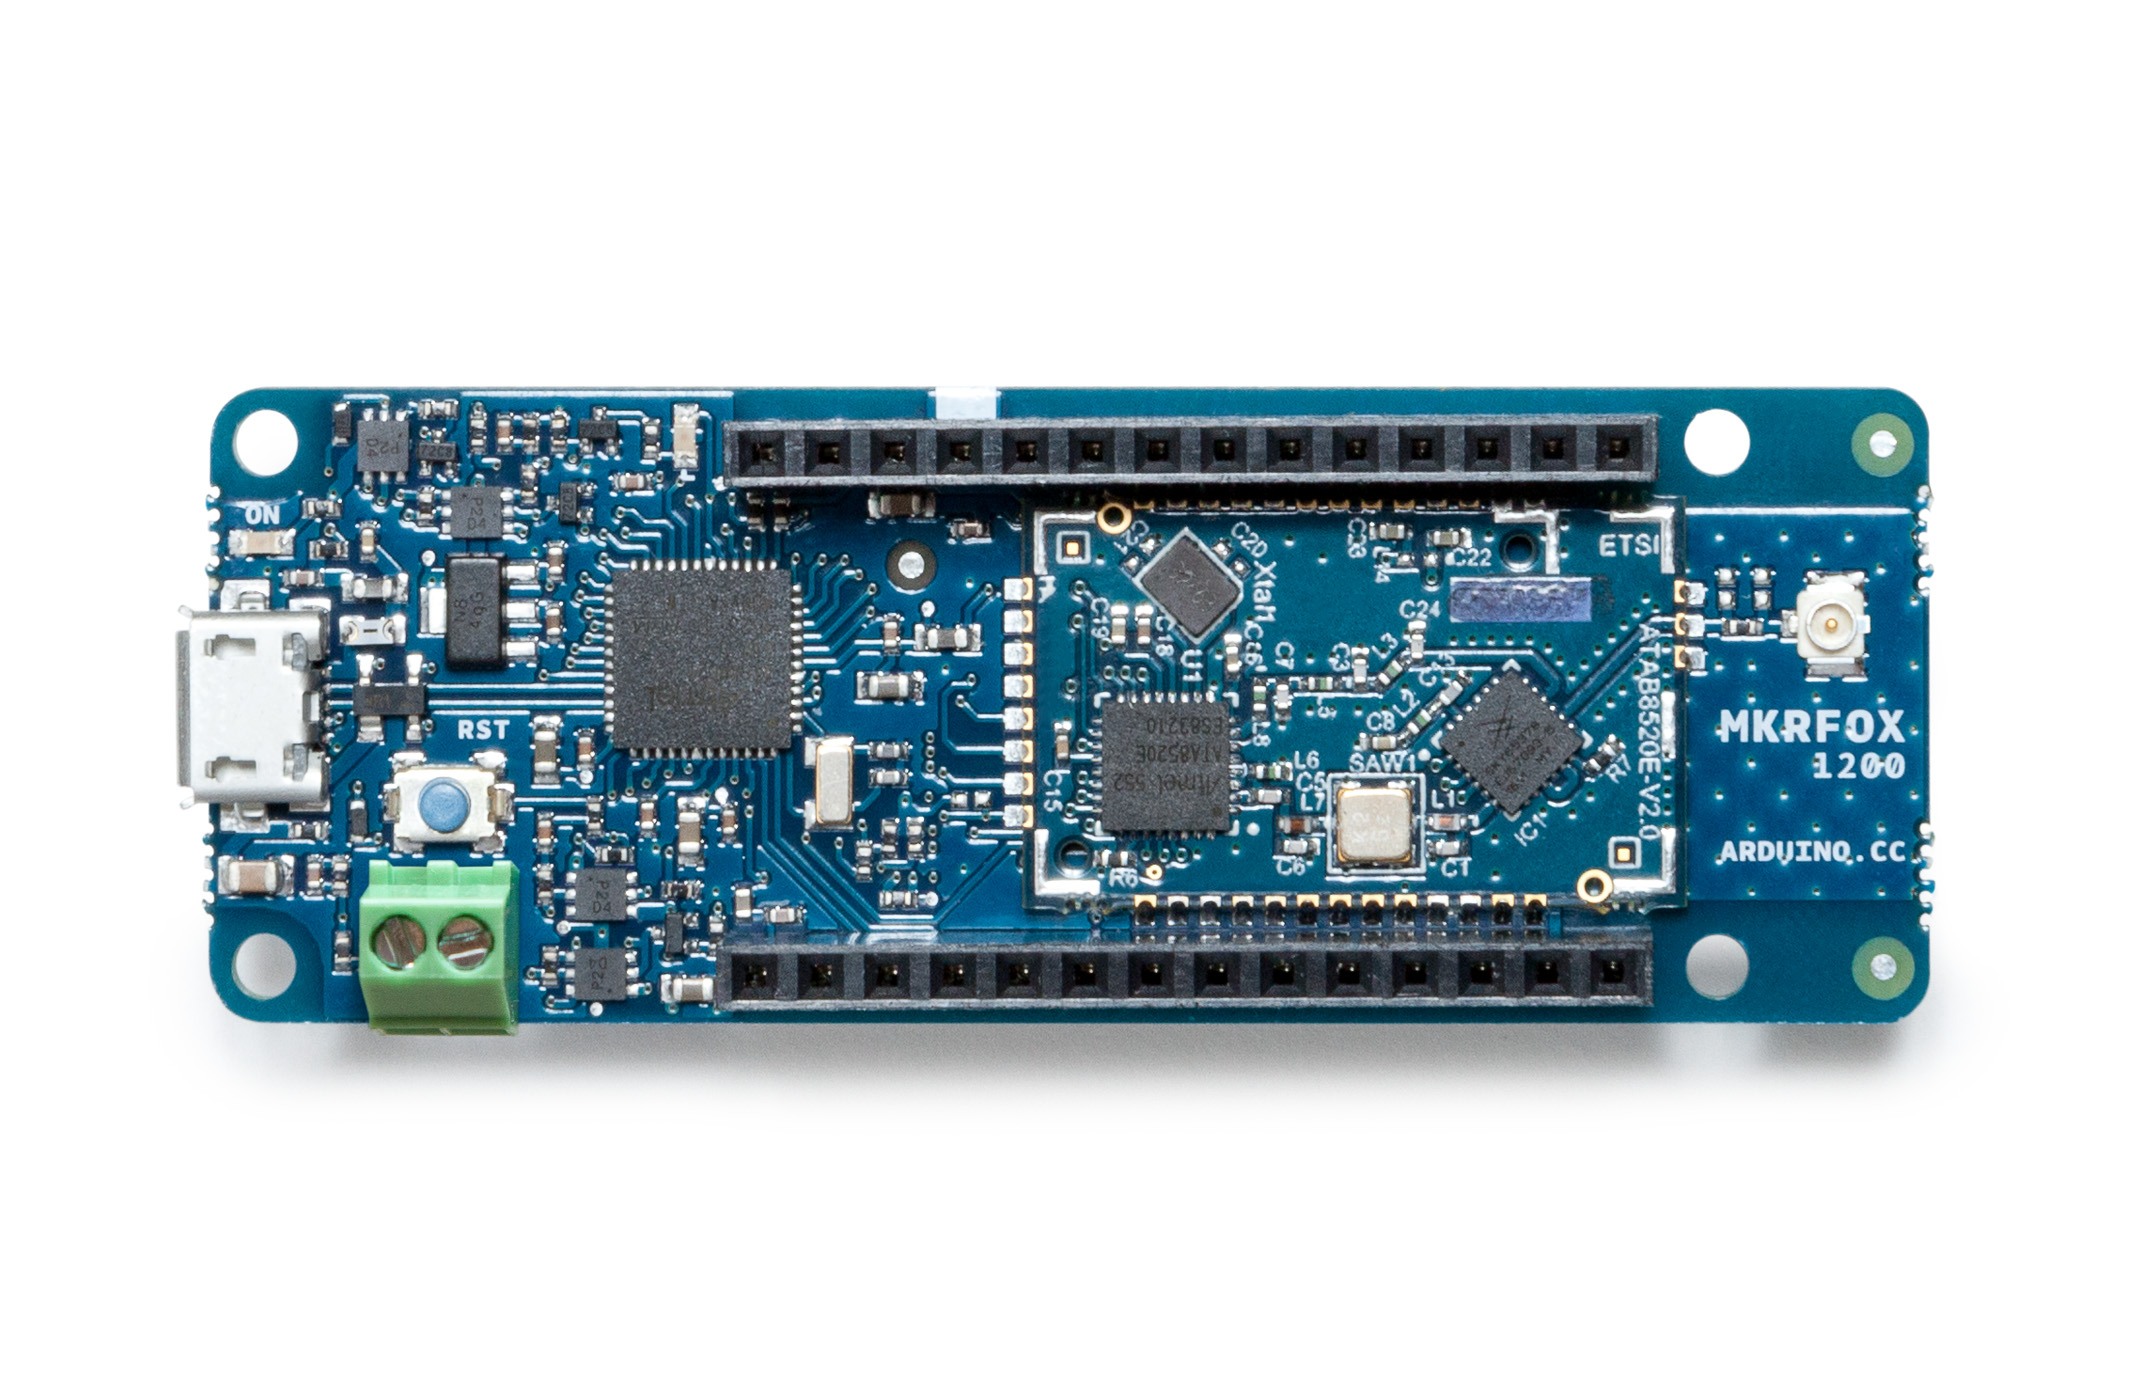 New arduino iot development board unveiled mkrfox